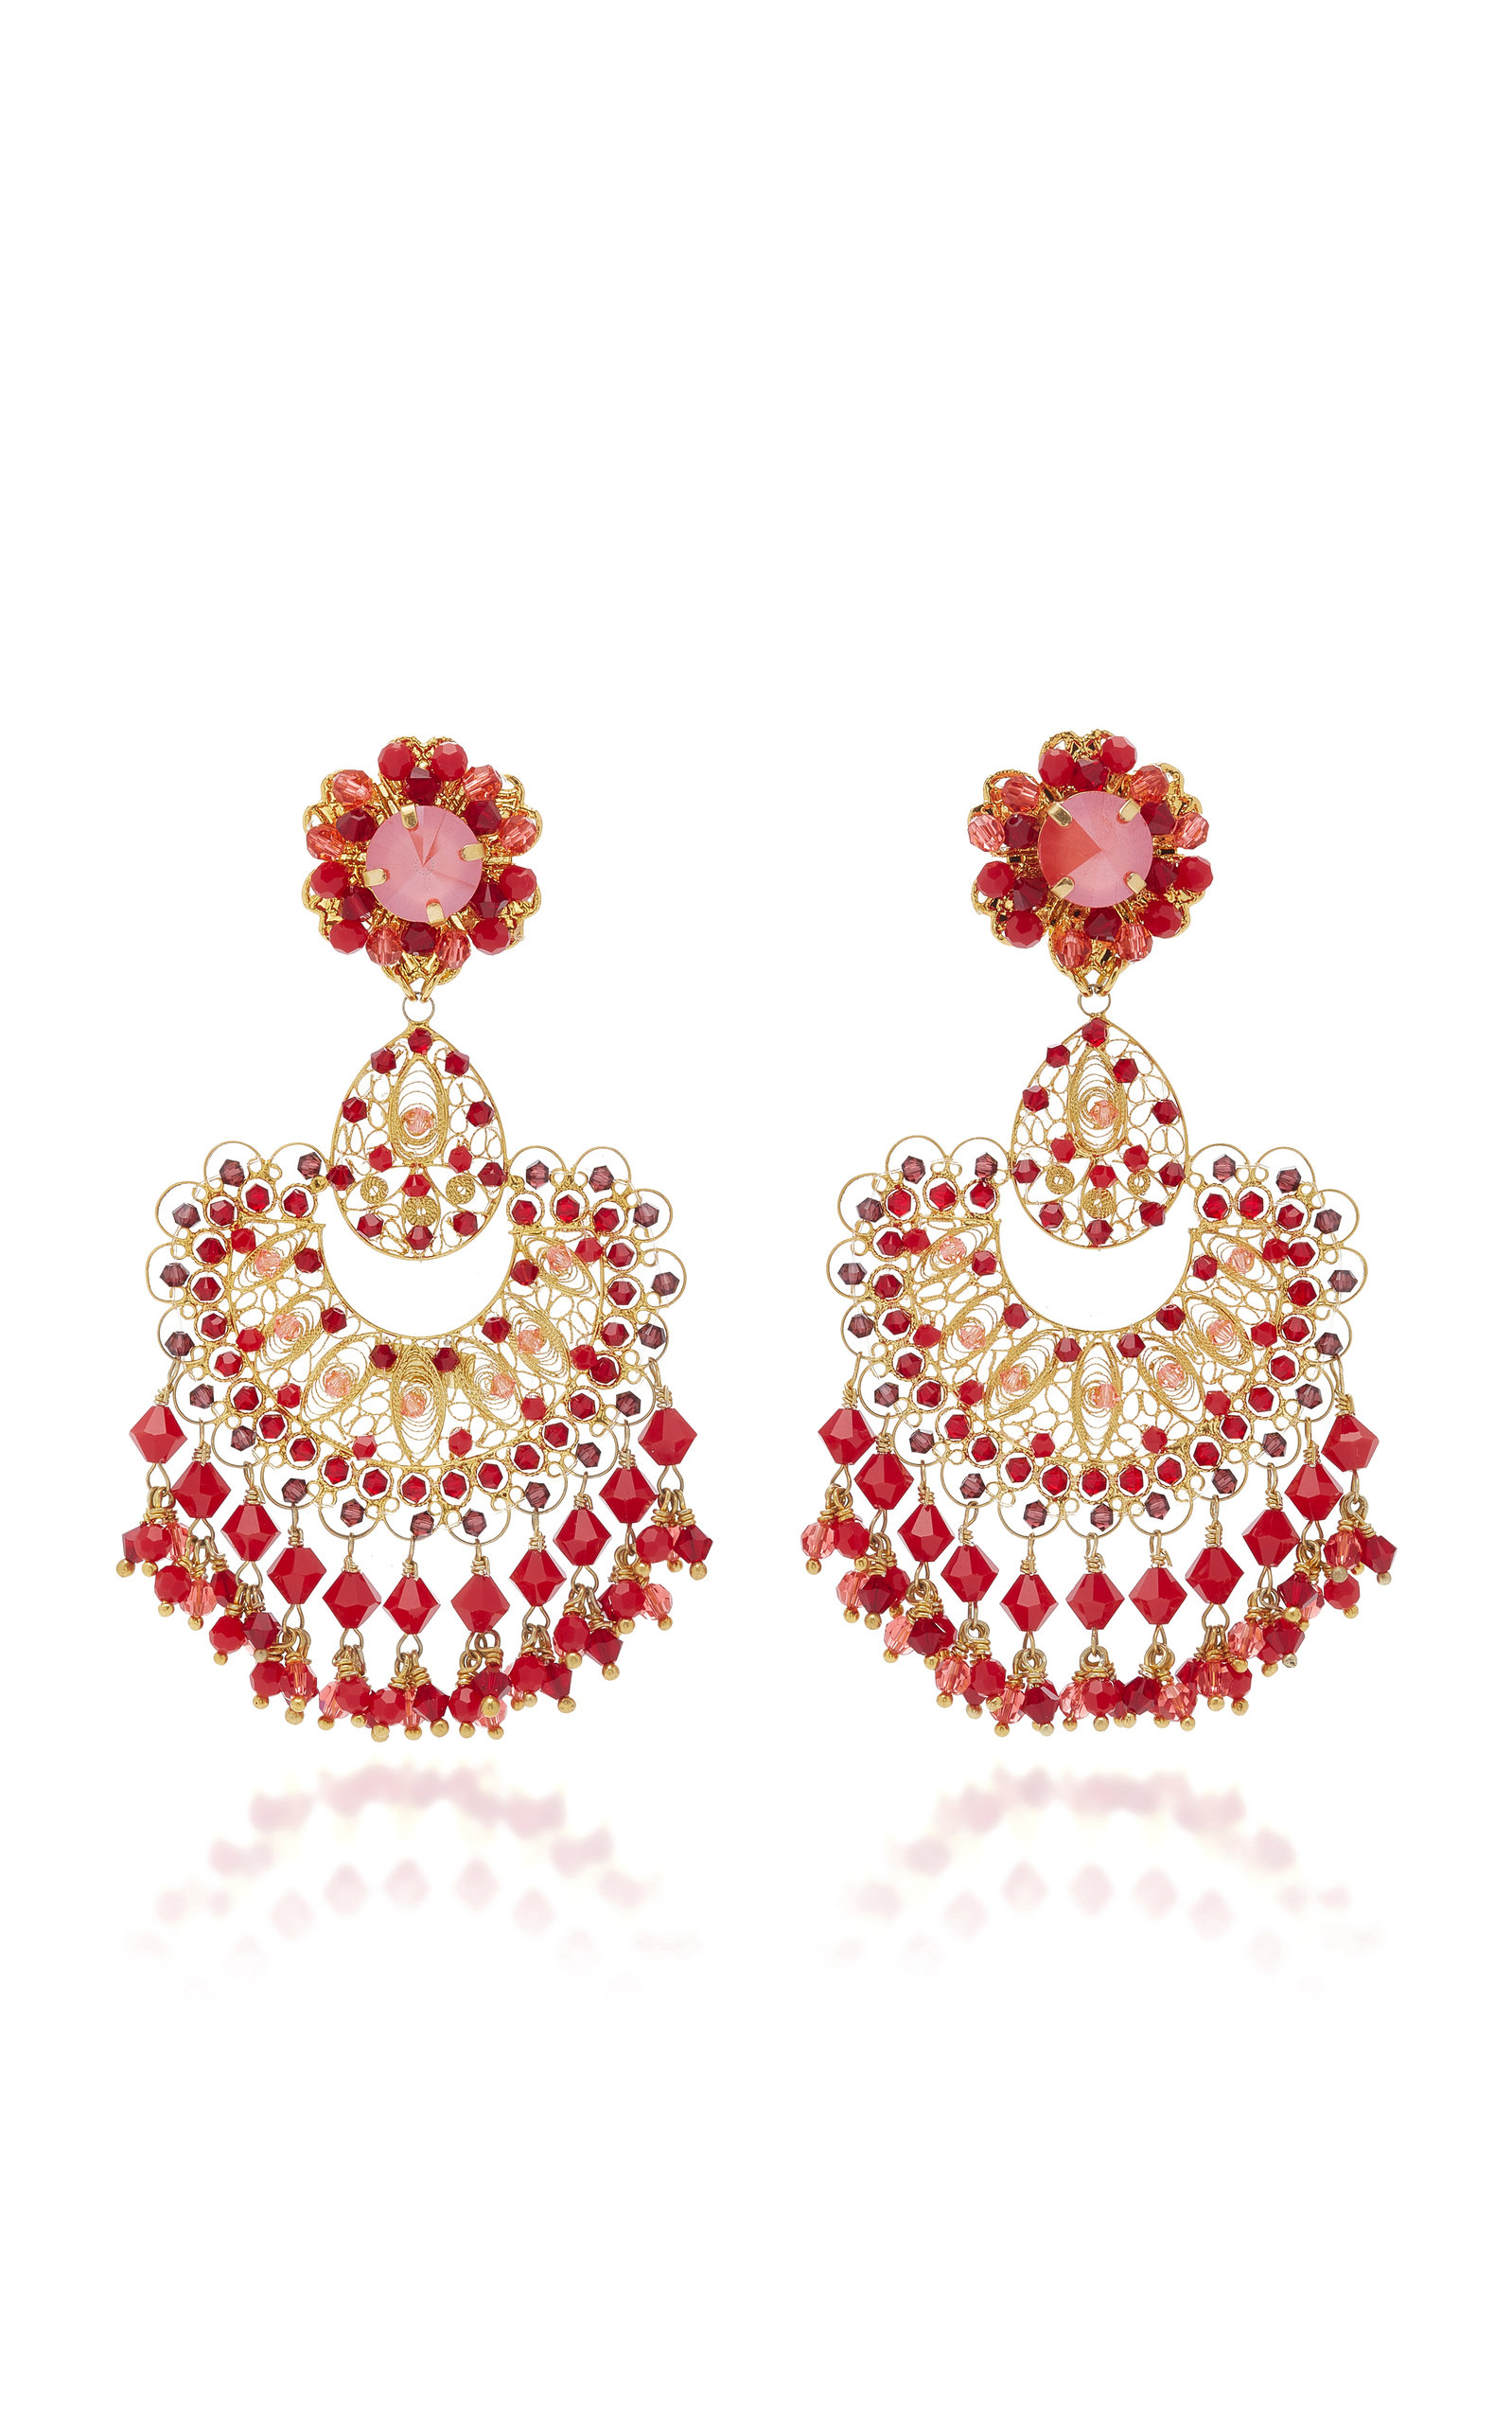 RED CORAL FILIGREE EARRING